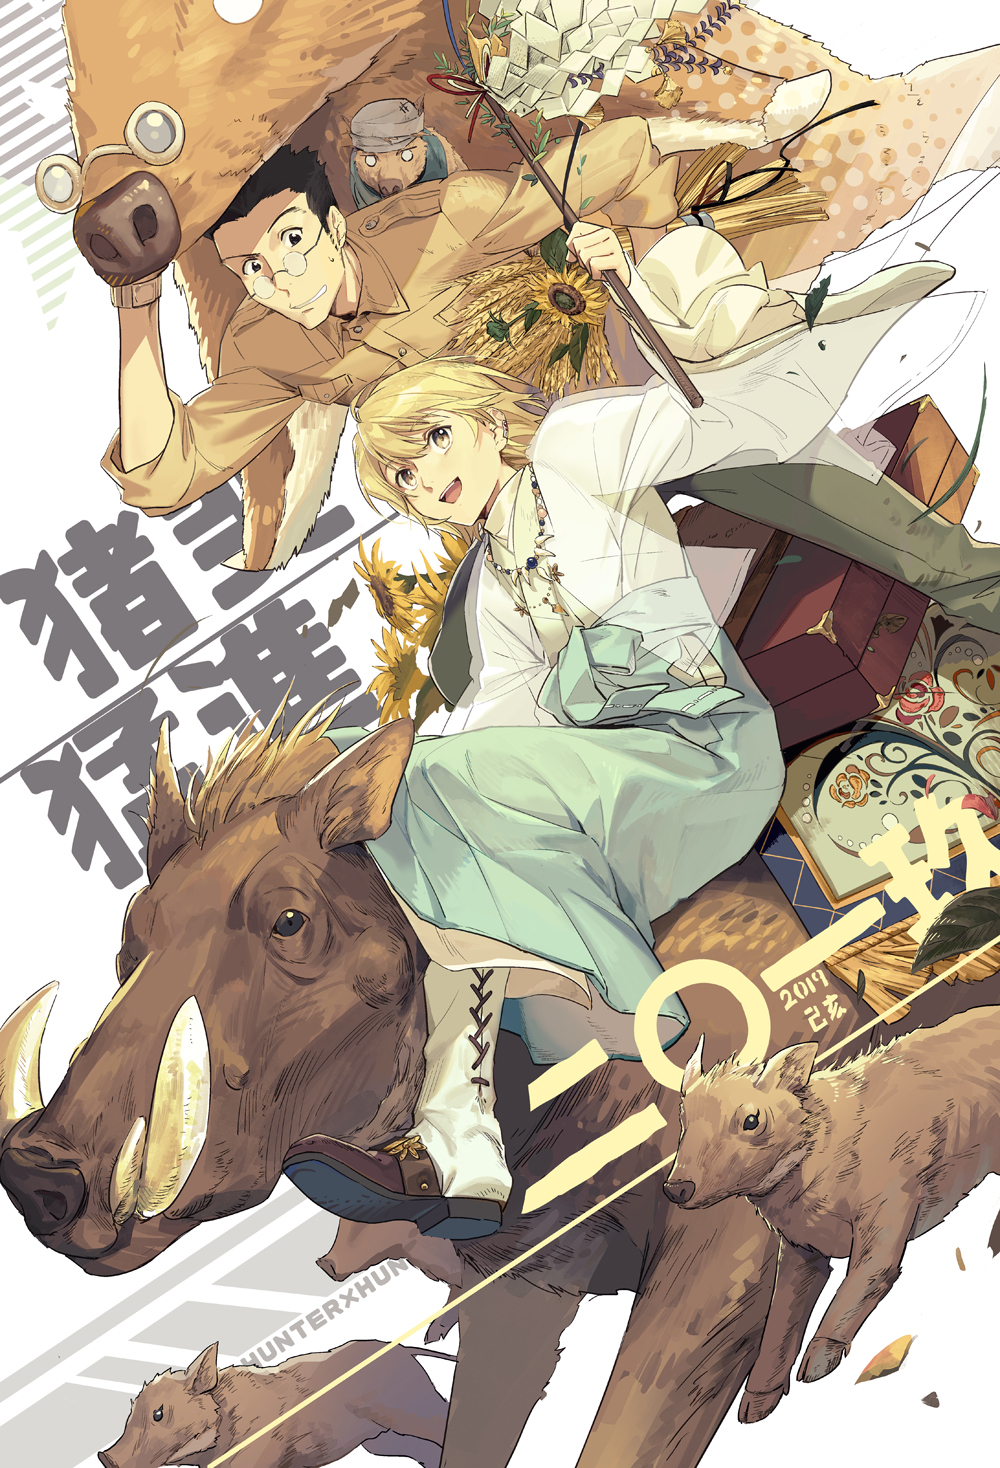 2019 2boys :d animal aqua_hakama arm_at_side bangs bead_necklace beads belt black_eyes black_hair blonde_hair boar boots carrying_under_arm chinese_zodiac clothed_animal dress_shirt ear_clip fang_necklace flower glasses gohei green_pants hakama hand_up highres holding hunter_x_hunter japanese_clothes jewelry karaori kurapika leorio_paladiknight long_sleeves looking_at_viewer male_focus multiple_boys multiple_riders necklace new_year open_mouth pants piglet riding riding_boar round_eyewear shide shirt shoe_soles smile standing suitcase sunflower sweatdrop wheat white_background white_footwear wide_sleeves year_of_the_pig yellow_eyes yellow_shirt